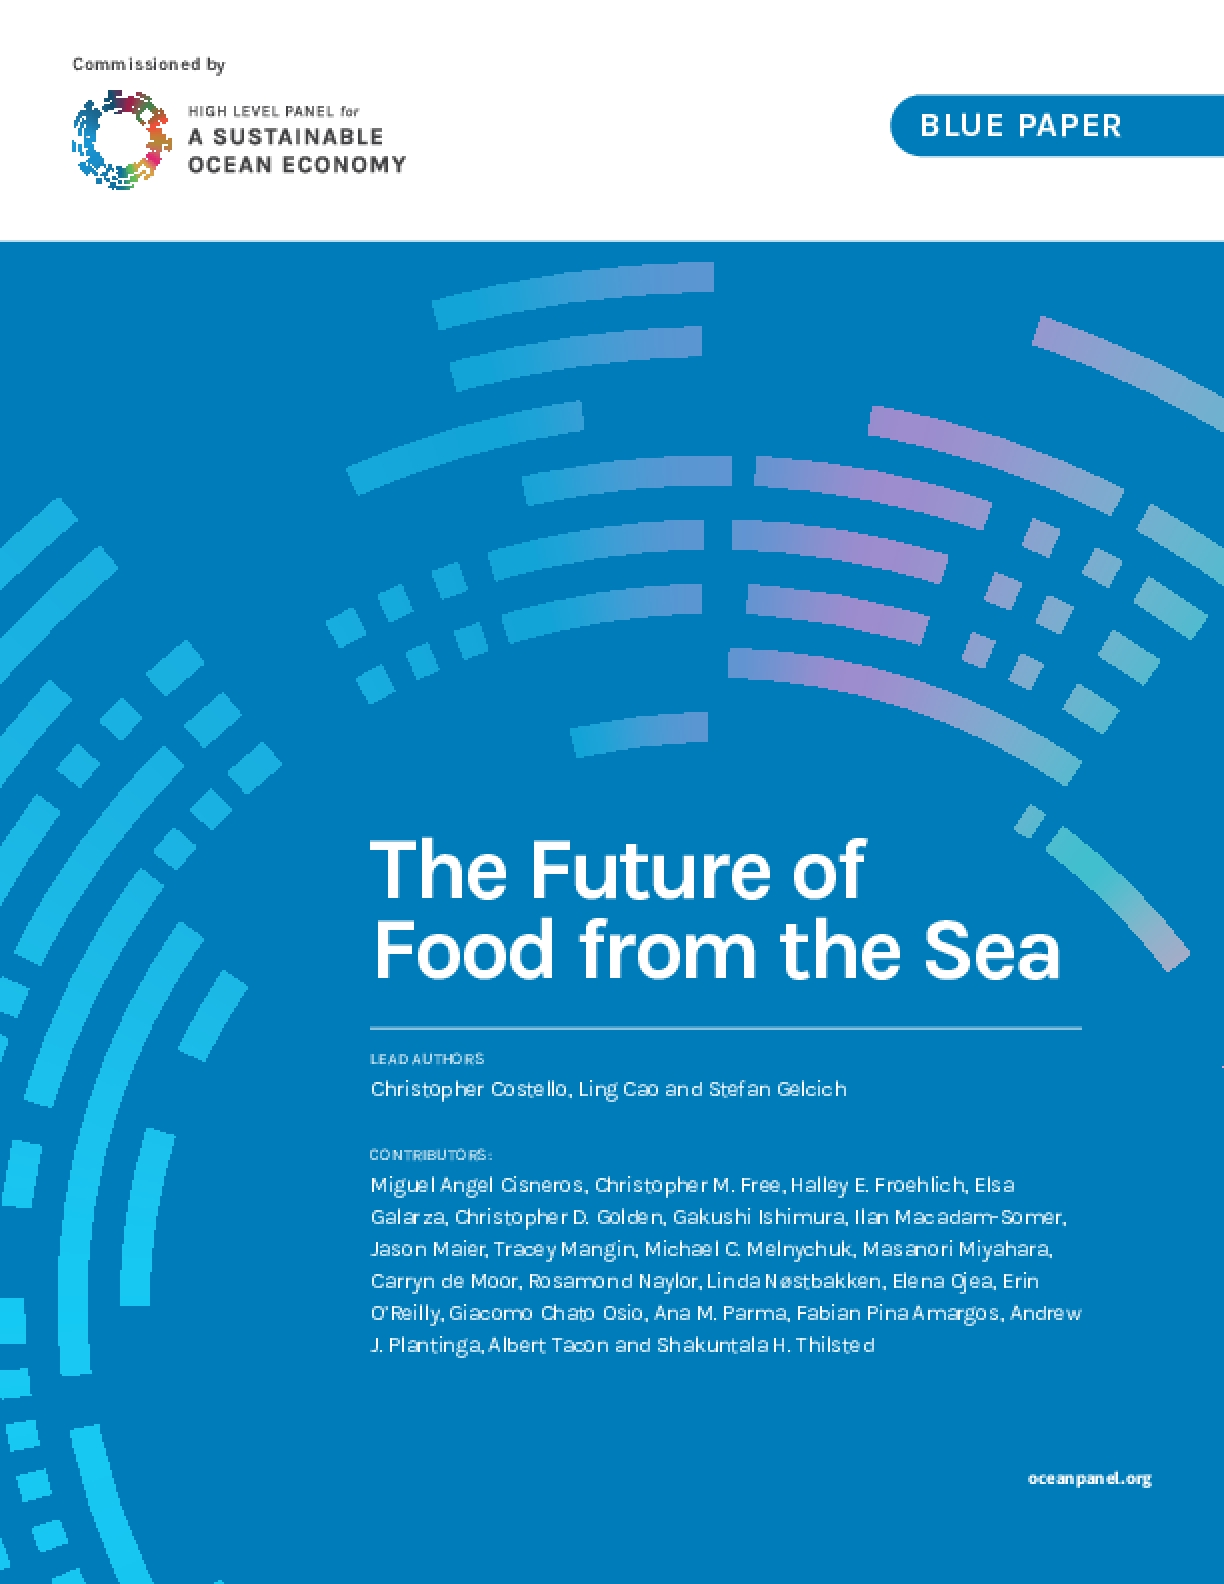 The Future of Food from the Sea